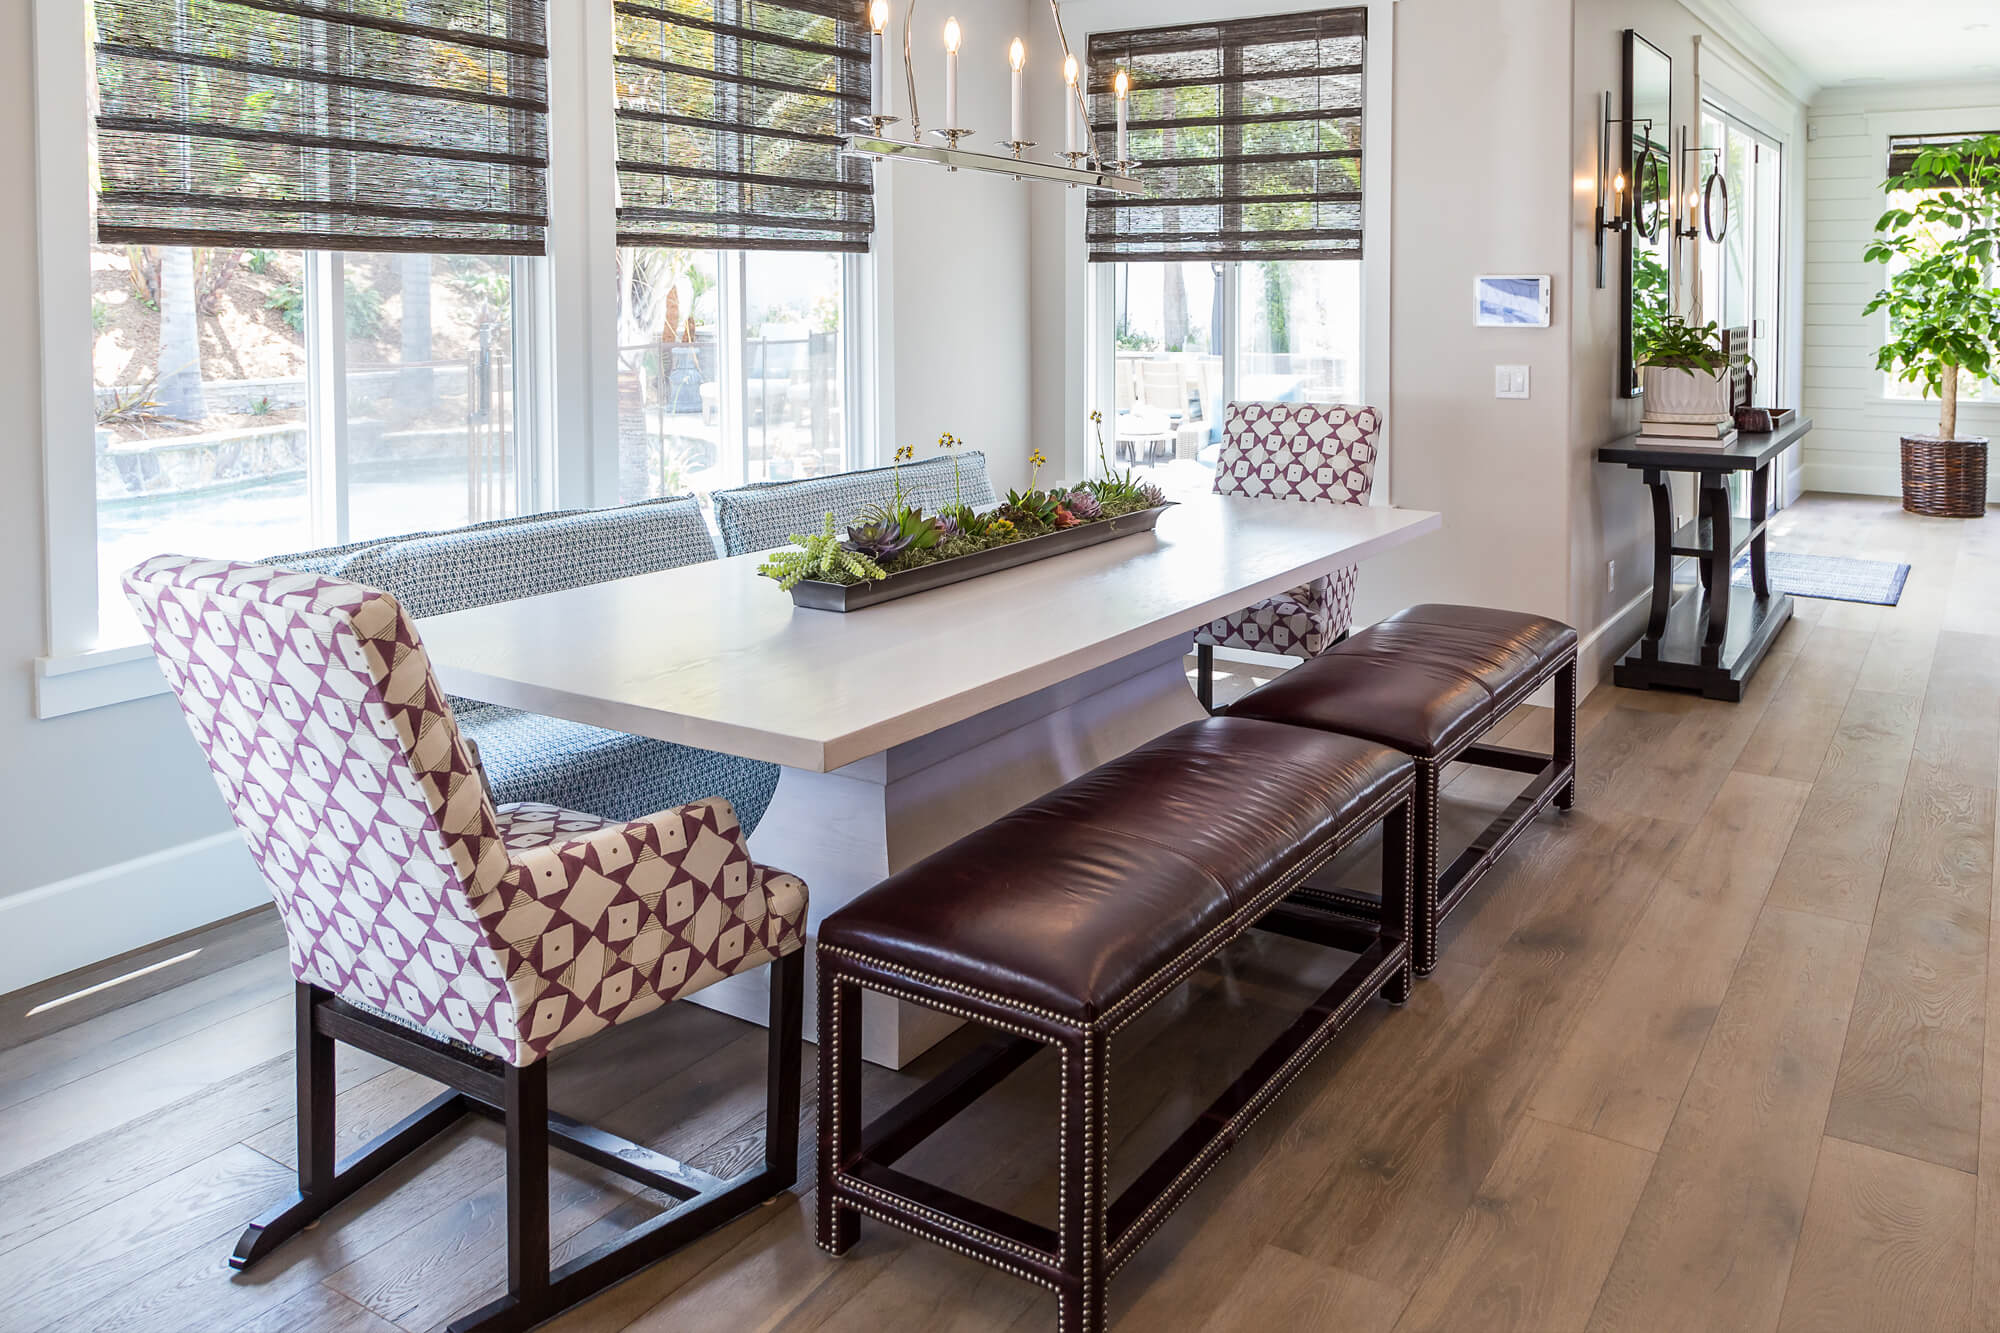 Home Remodeling in San Diego, CA   Custom Whole House Remodels